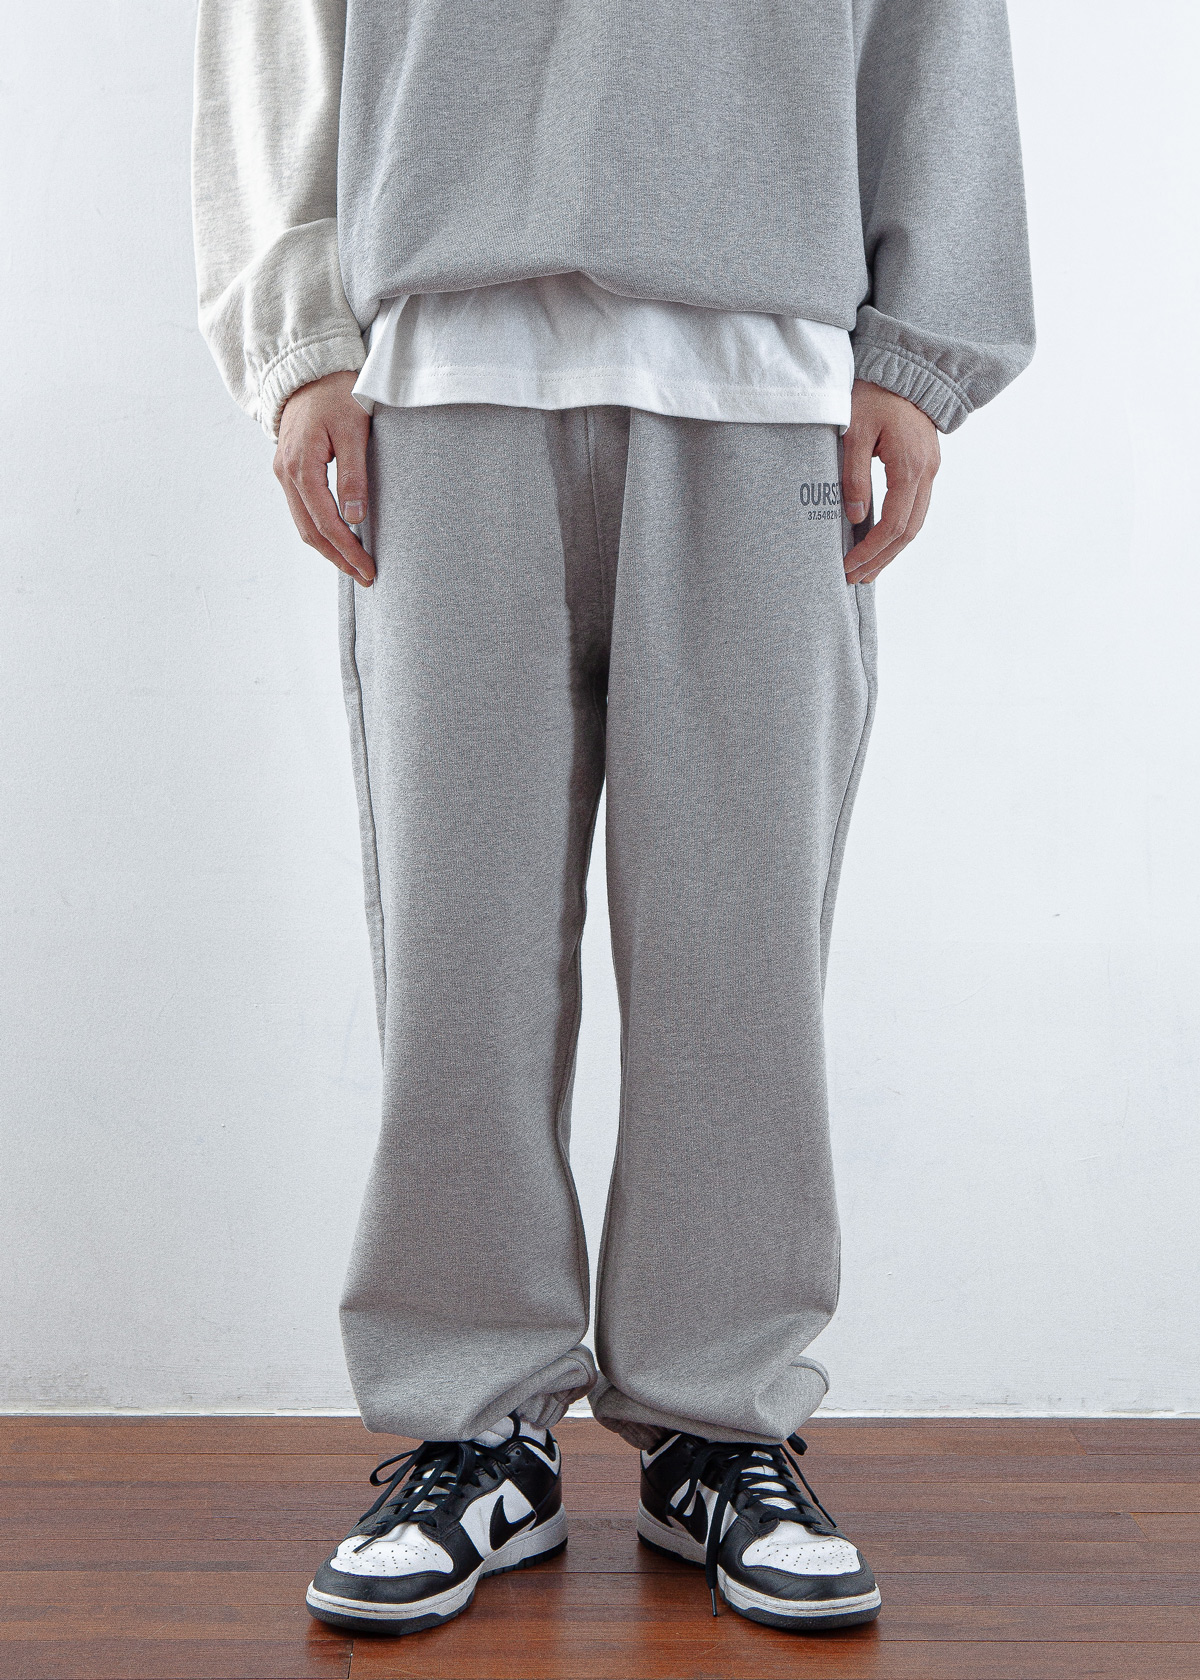 -[OURSELVES] LOGO PLAY SWEAT PANTS (melange/oatmeal)